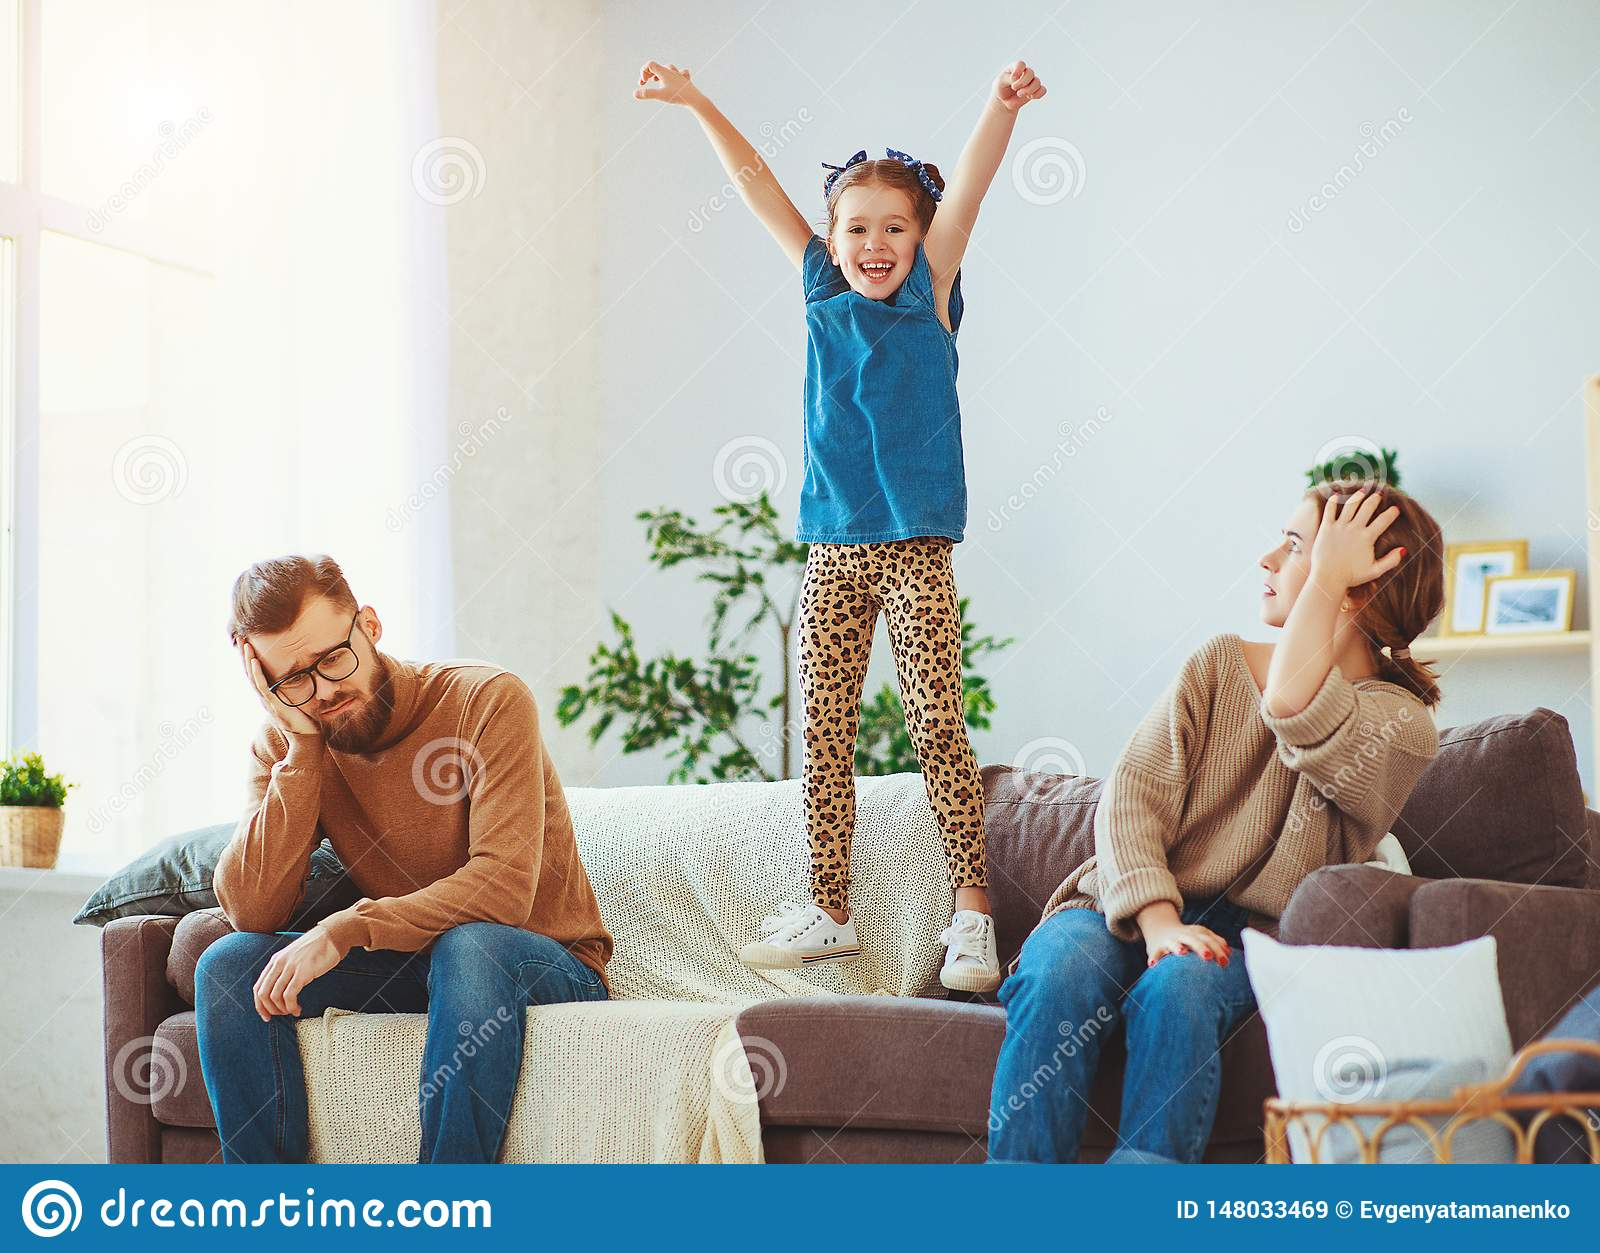 Naughty, mischievous, child girl jumping, laughing and having fun, parents stressed with  headache